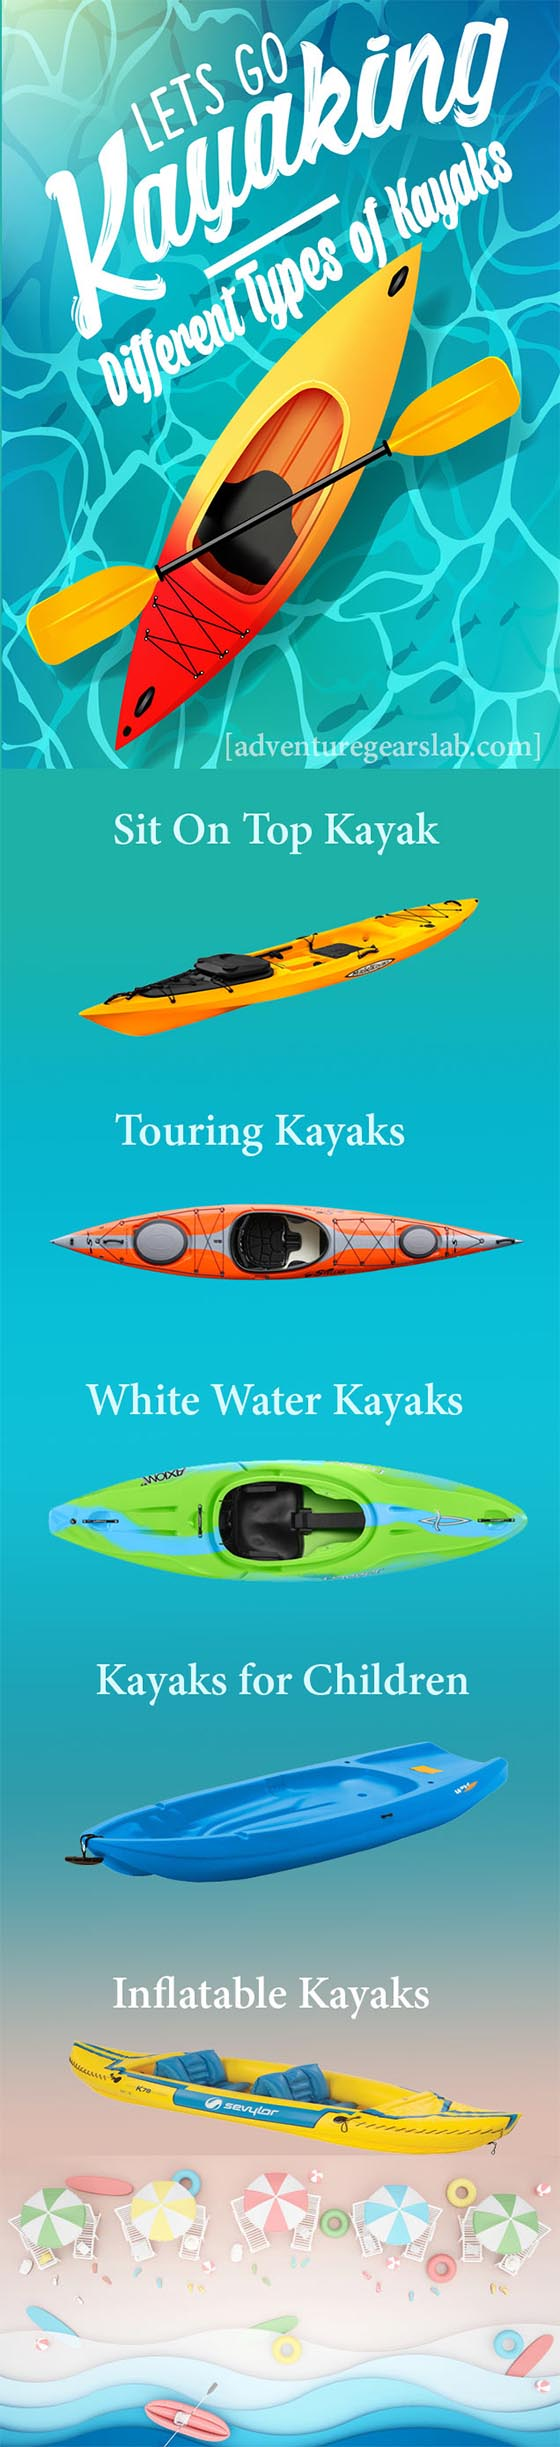 Different types of kayak